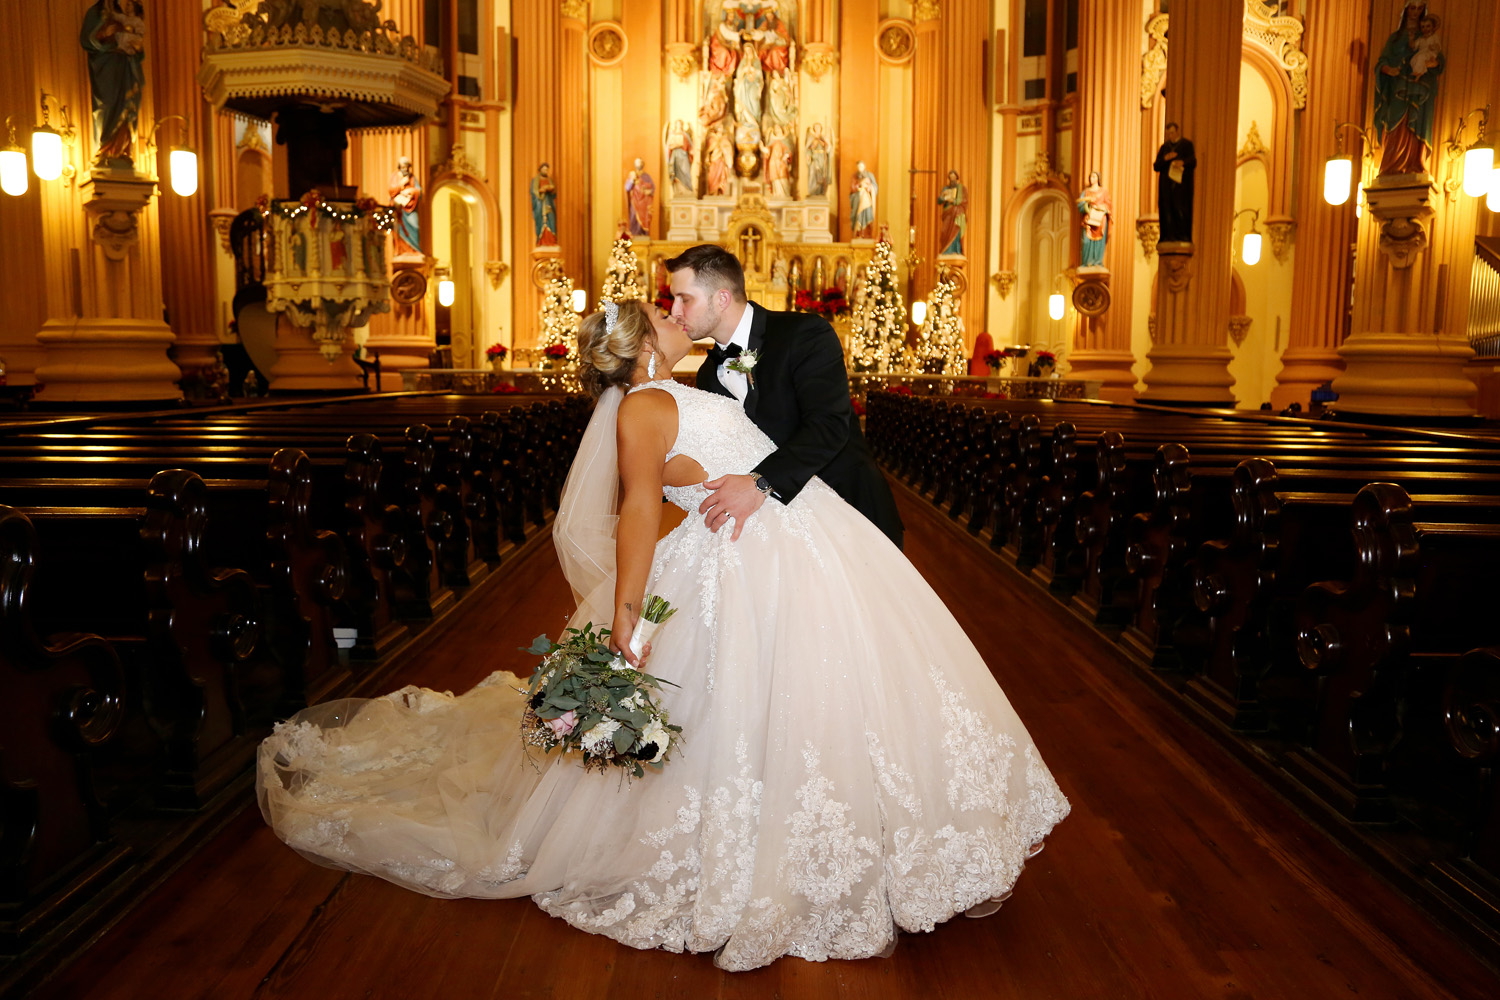 David And Courtney Stop For A Kiss After Their Wedding Ceremony At St. Mary's Assumption Church In New Orleans.